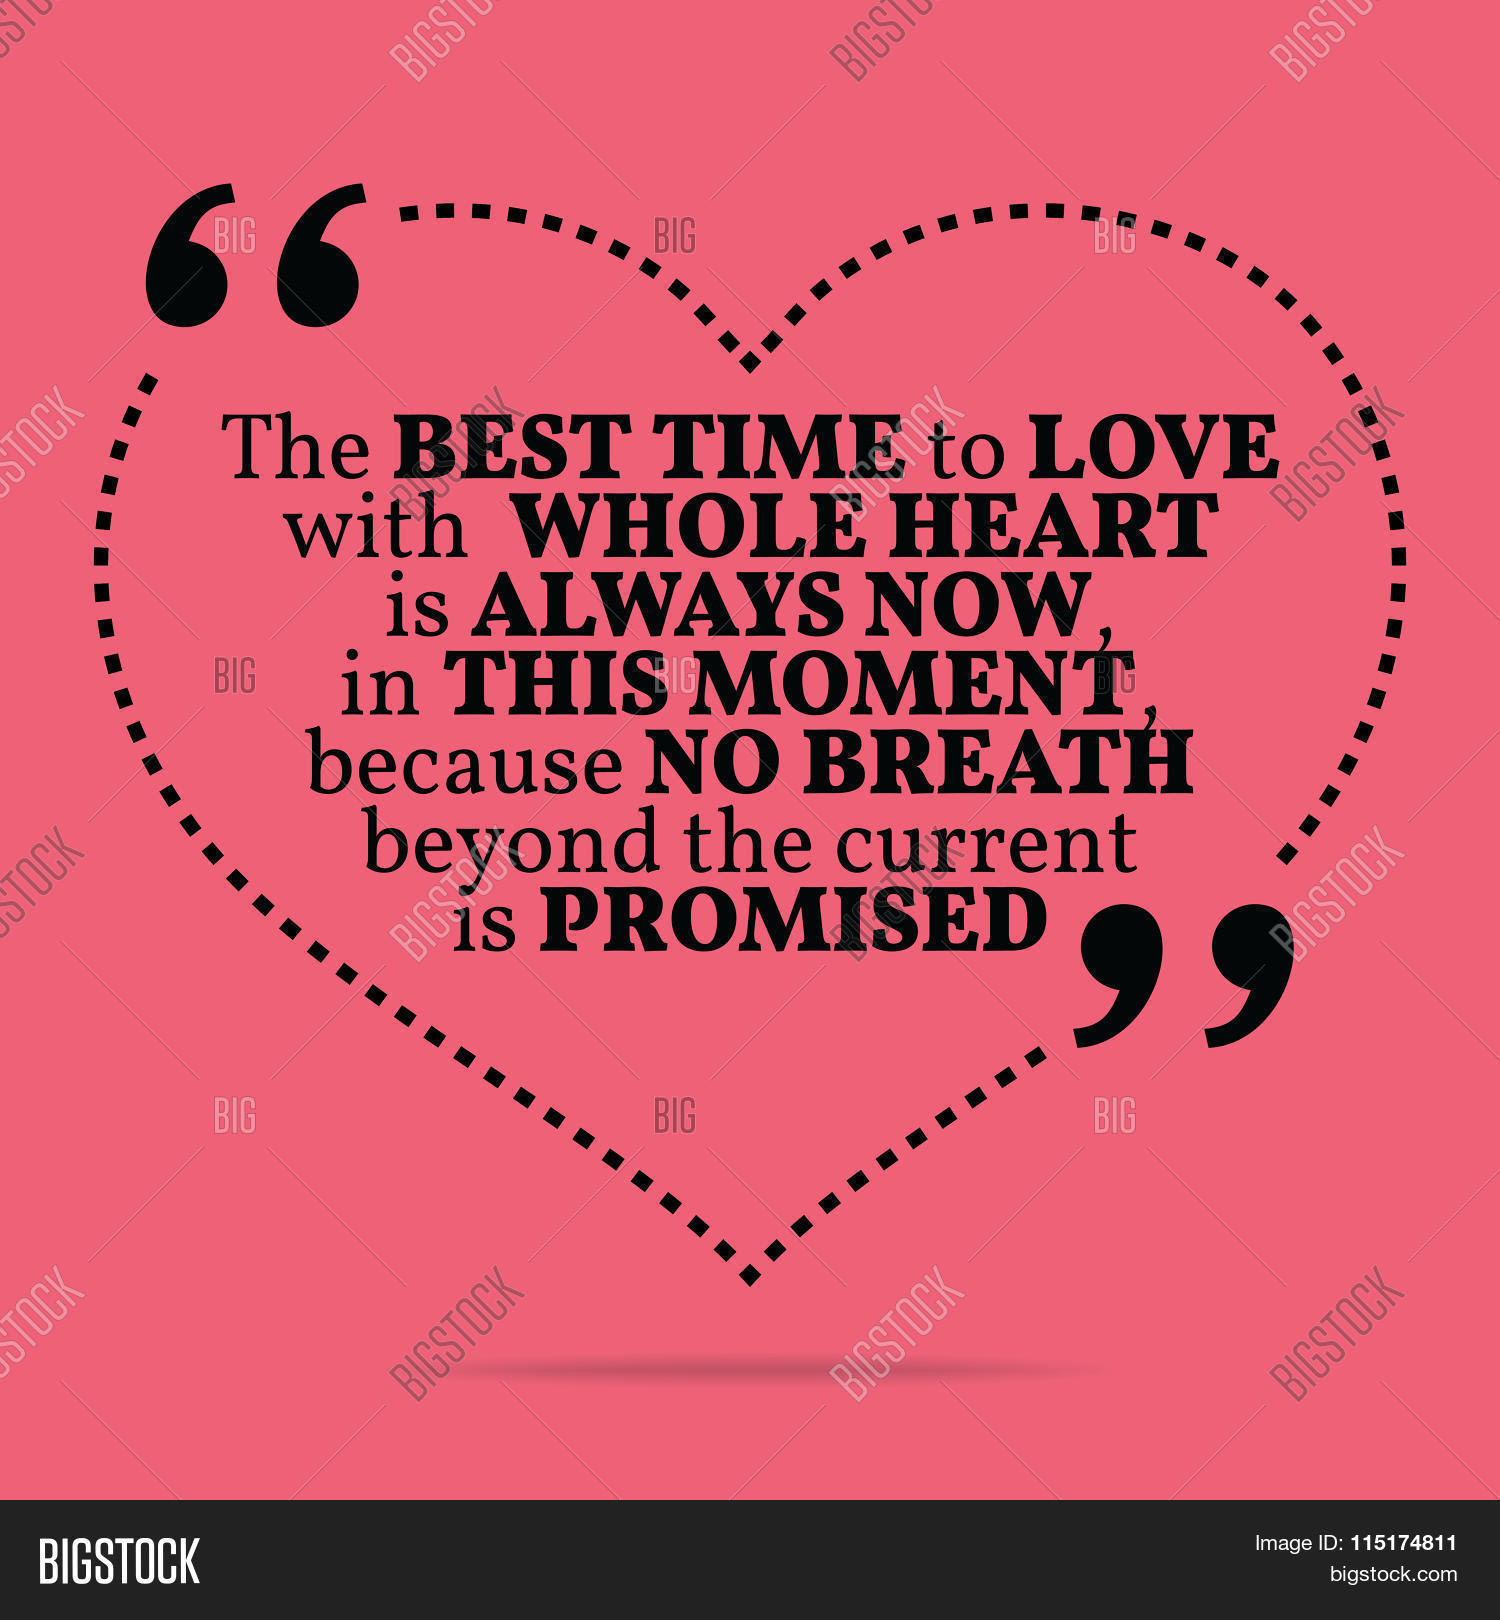 Inspirational Love Marriage Quote The Best Time To Love With Whole Heart Is Always Now